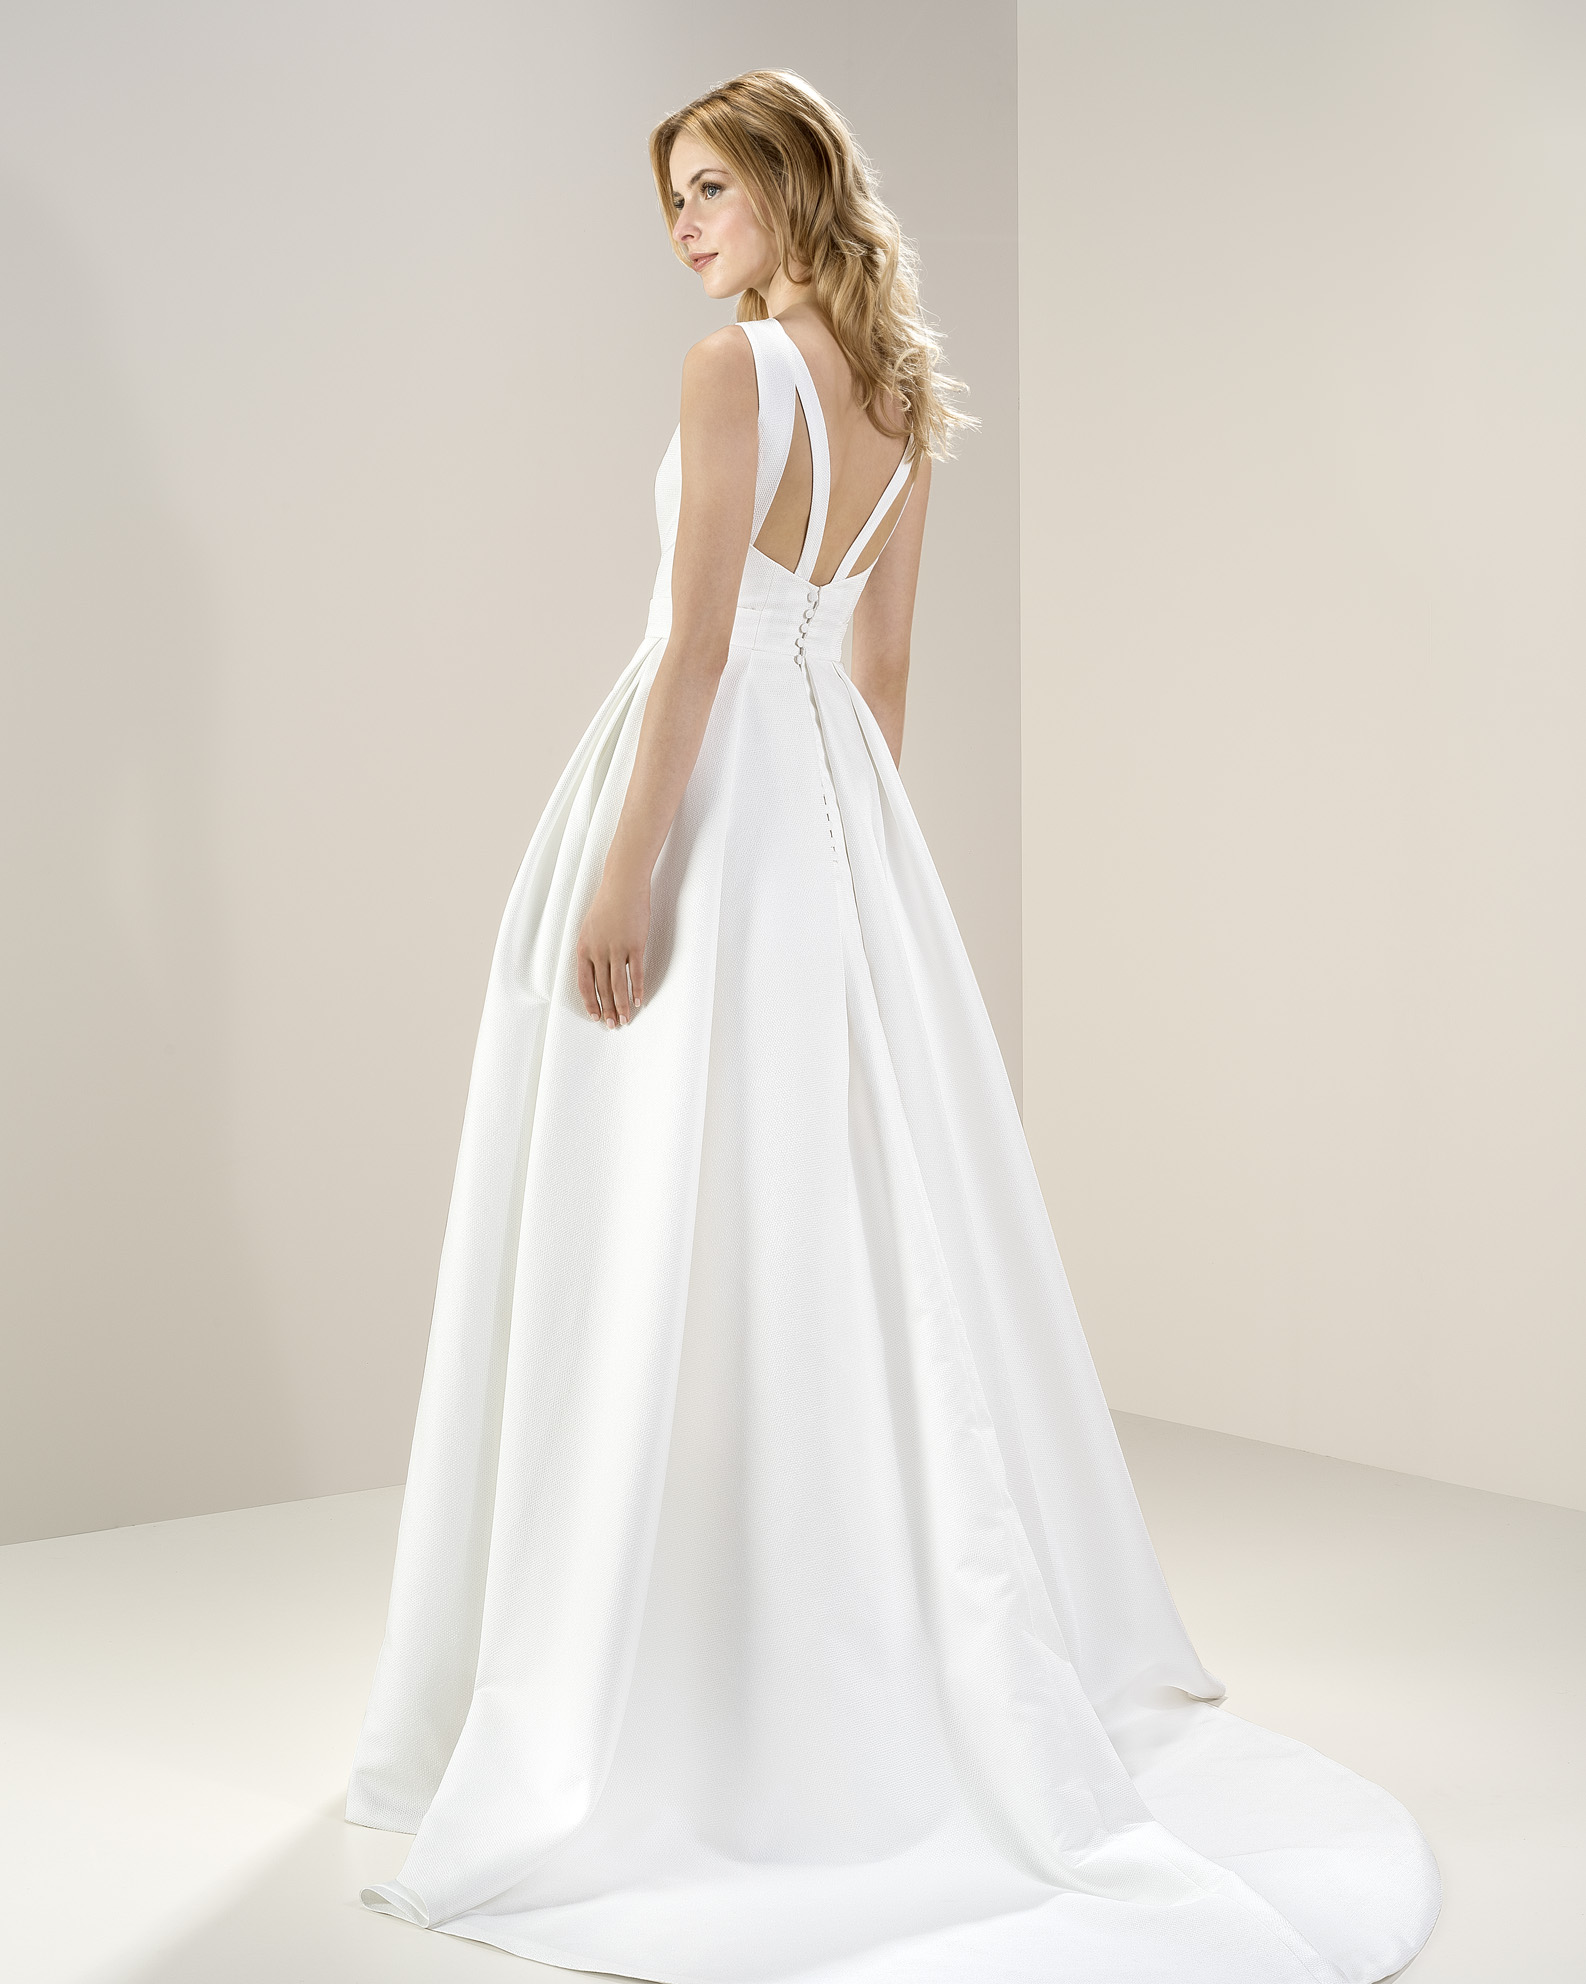 Jesus Peiro 8062 at Cicily Bridal